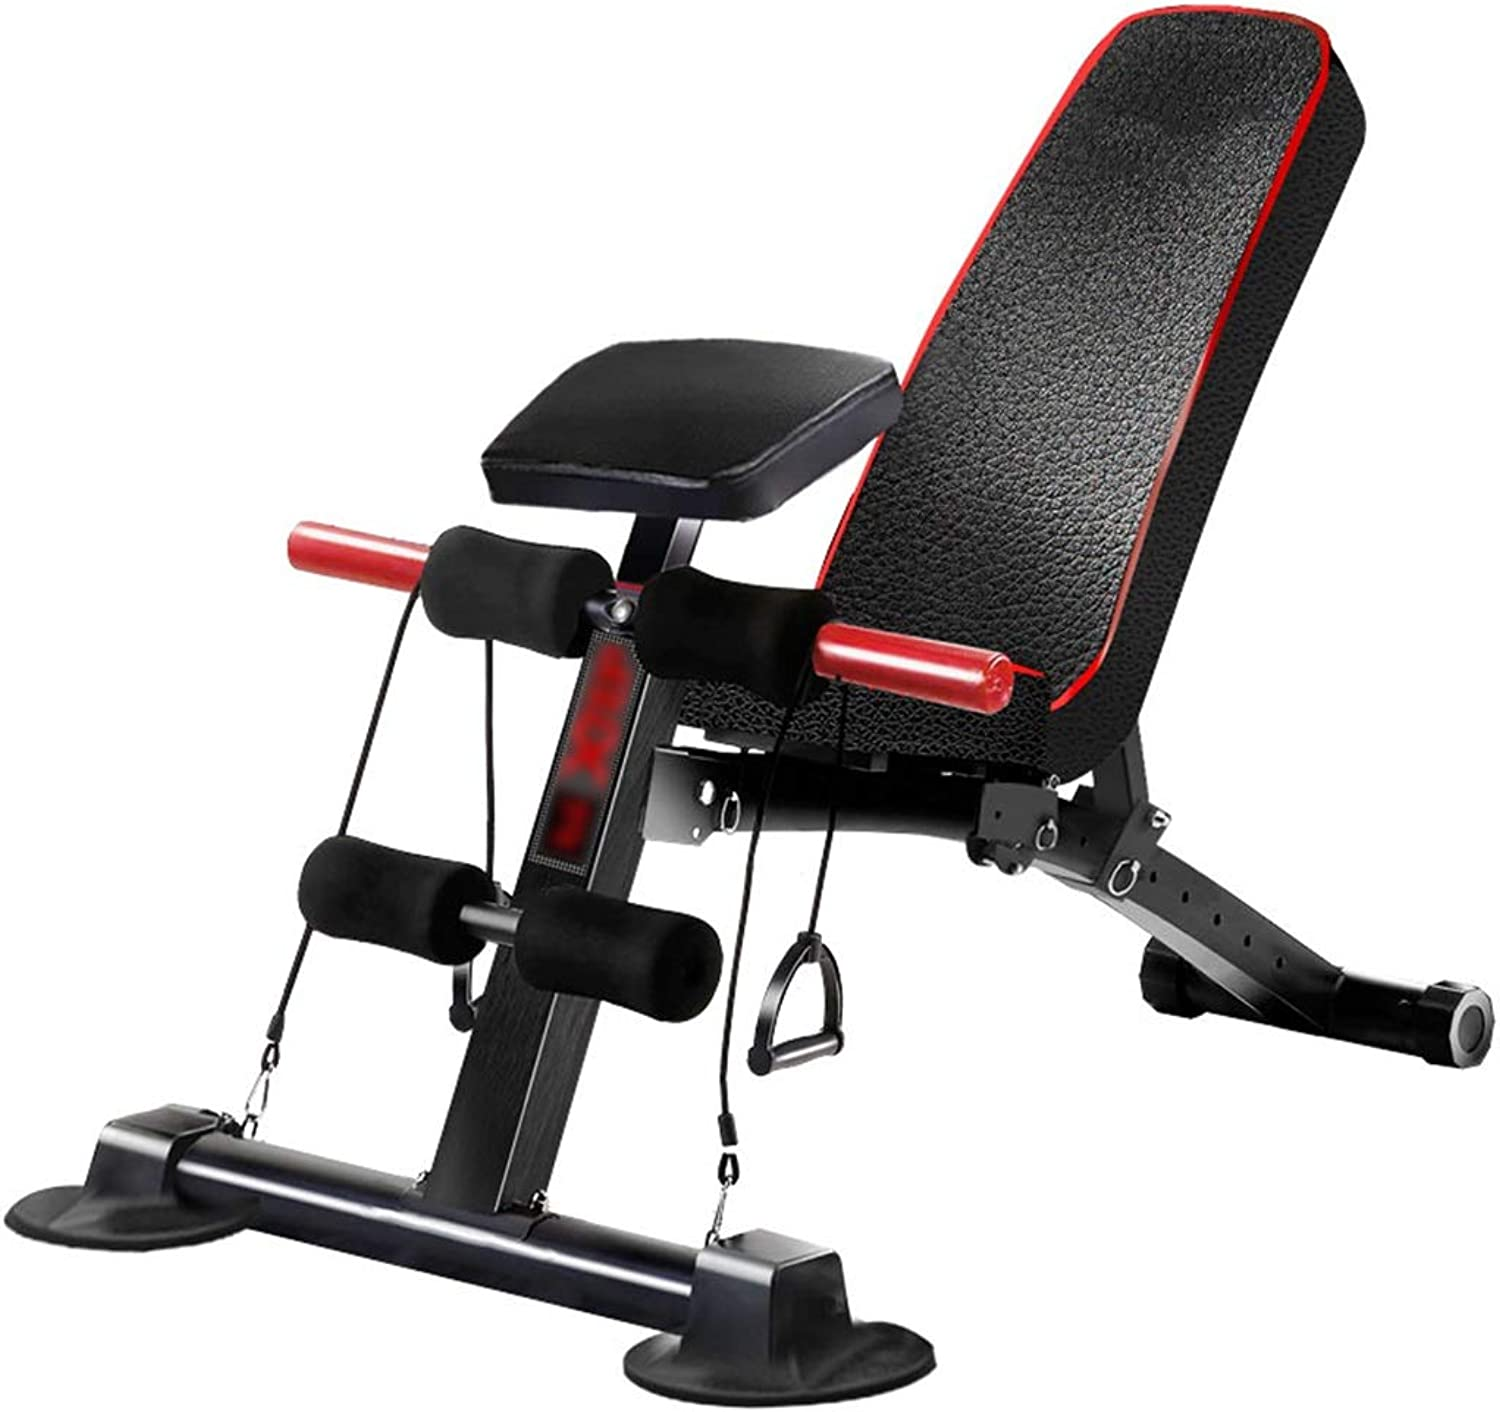 Adjustable Benches Situp Board Dumbbell Bench Situps Adjustable Bench Fitness Collapsible Abdominal Muscles Roman Stool MultiFunction Household Bench Press Weight Table